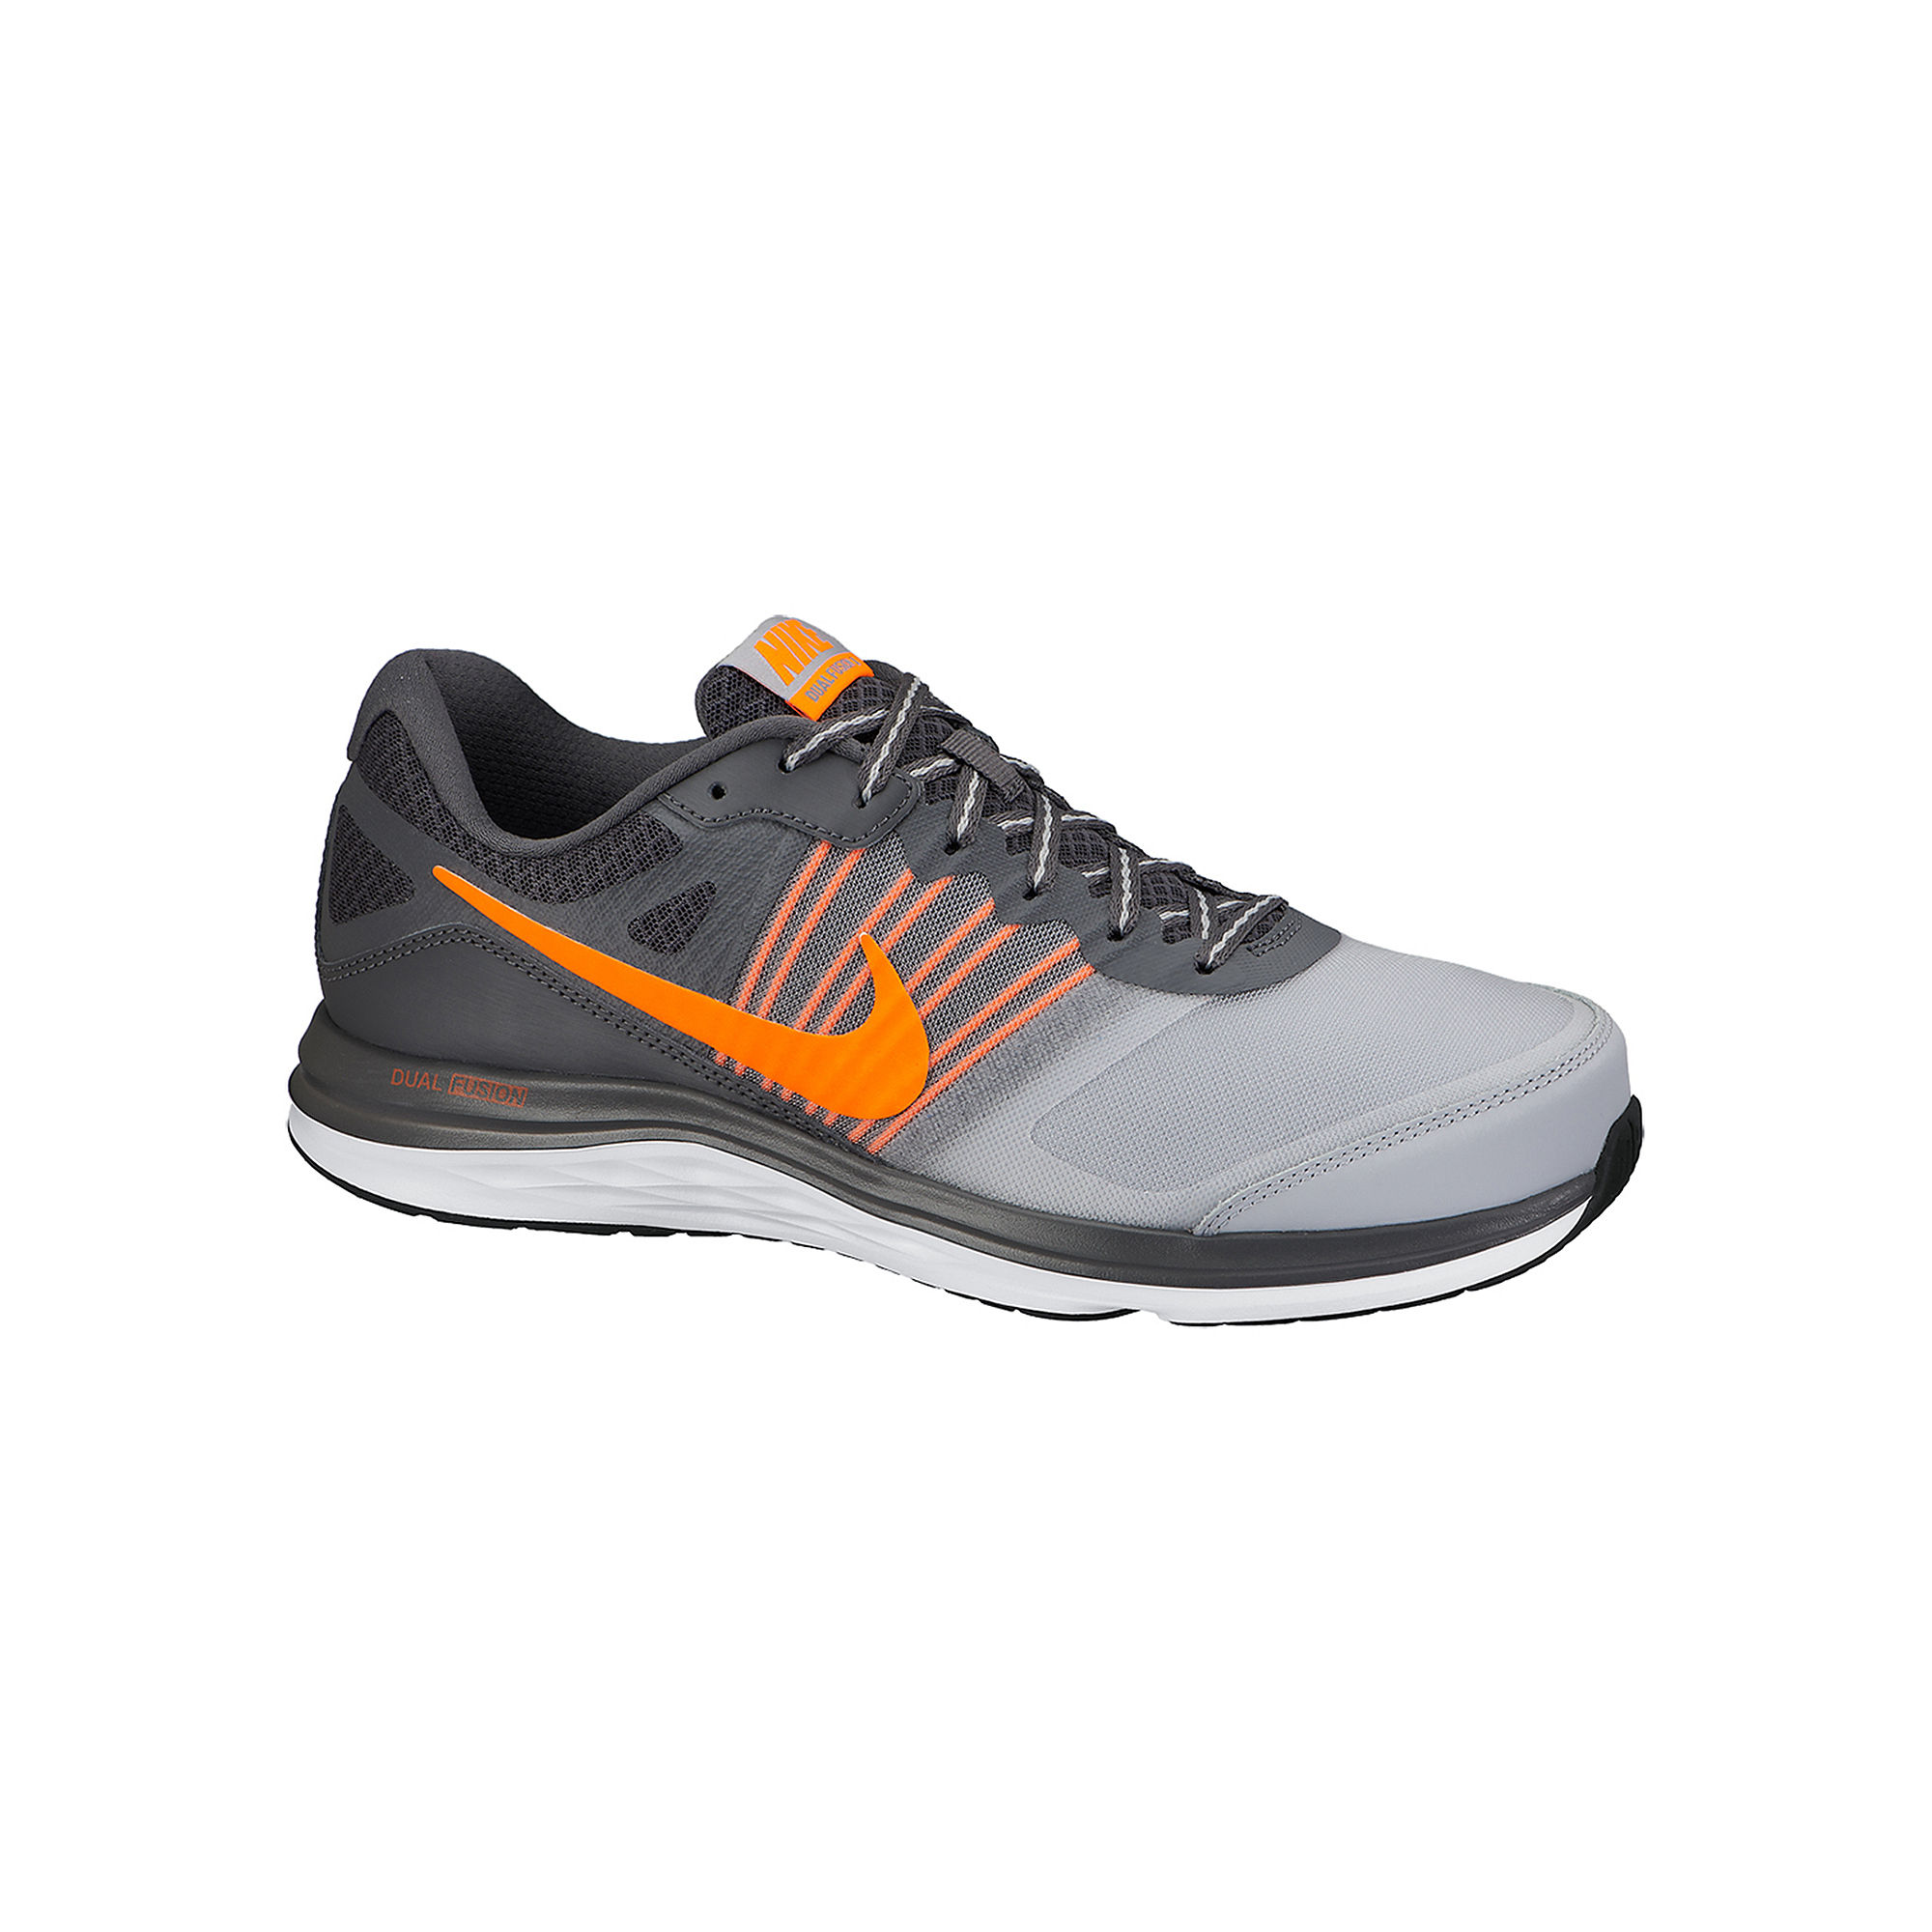 Nike Dual Fusion Mens Running Shoes Amazon